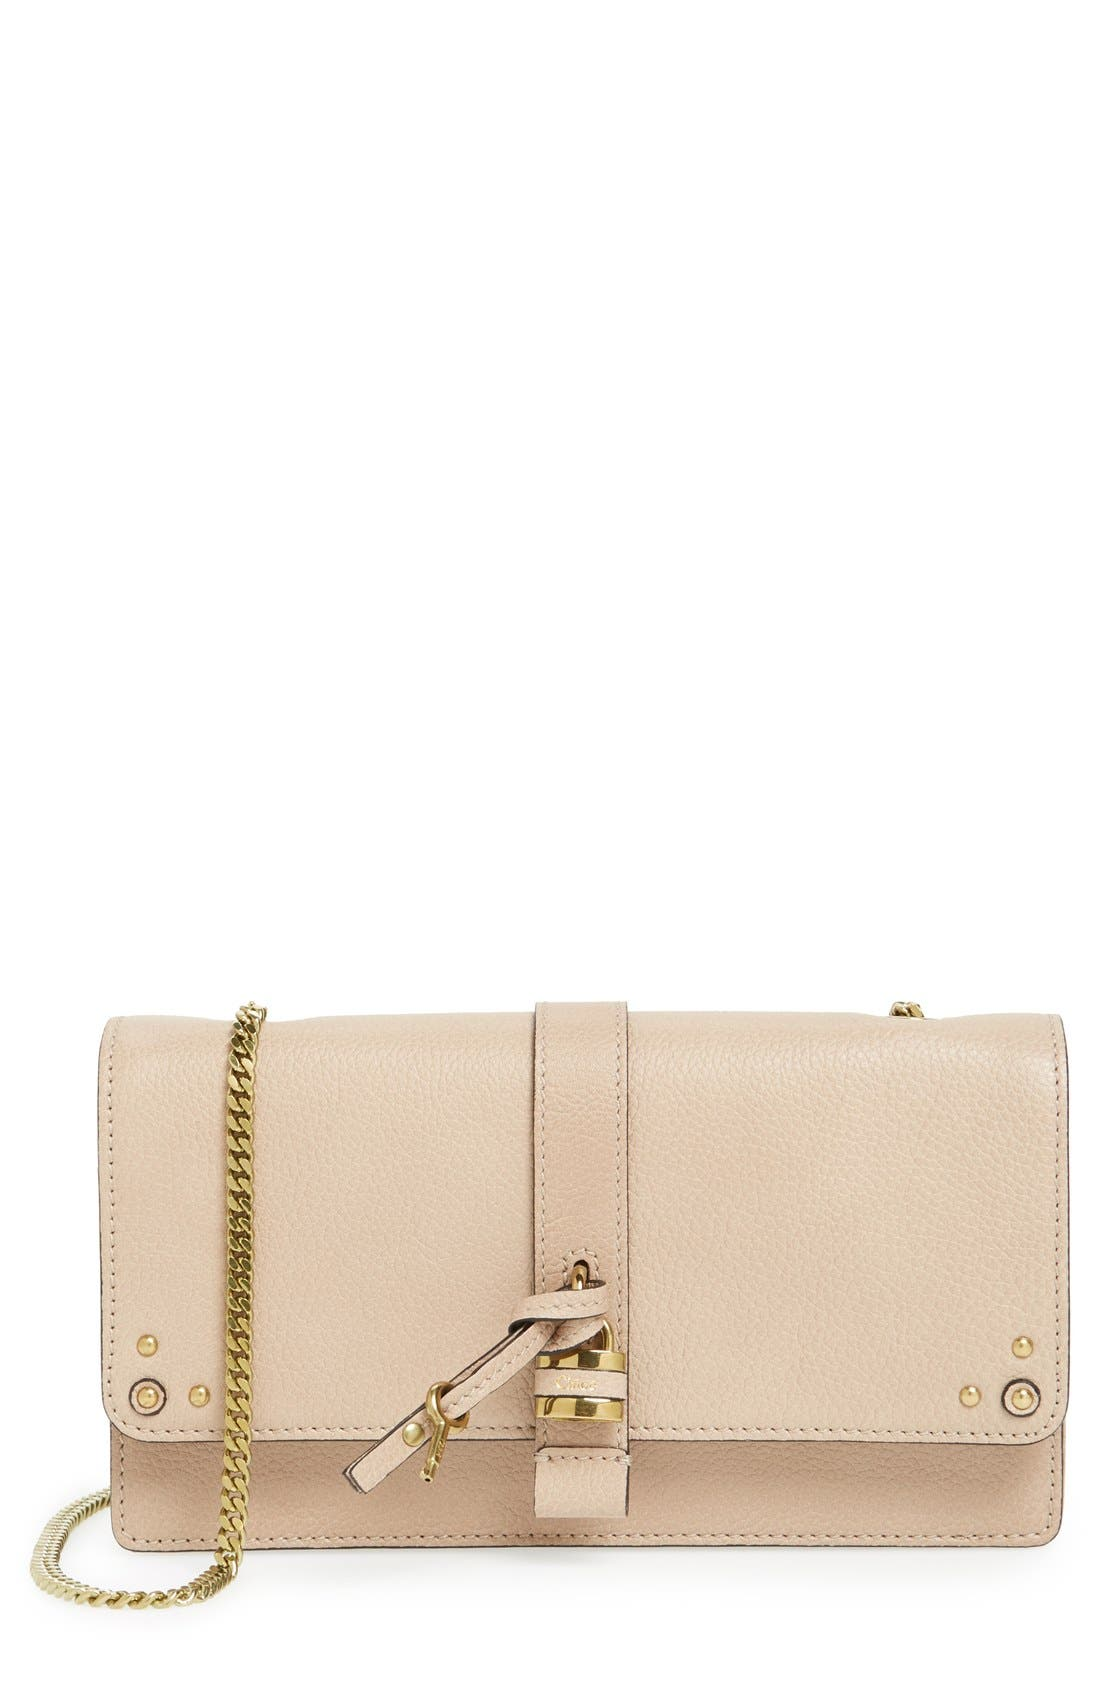 Main Image - Chloé 'Aurore' Calfskin Leather Wallet on a Chain